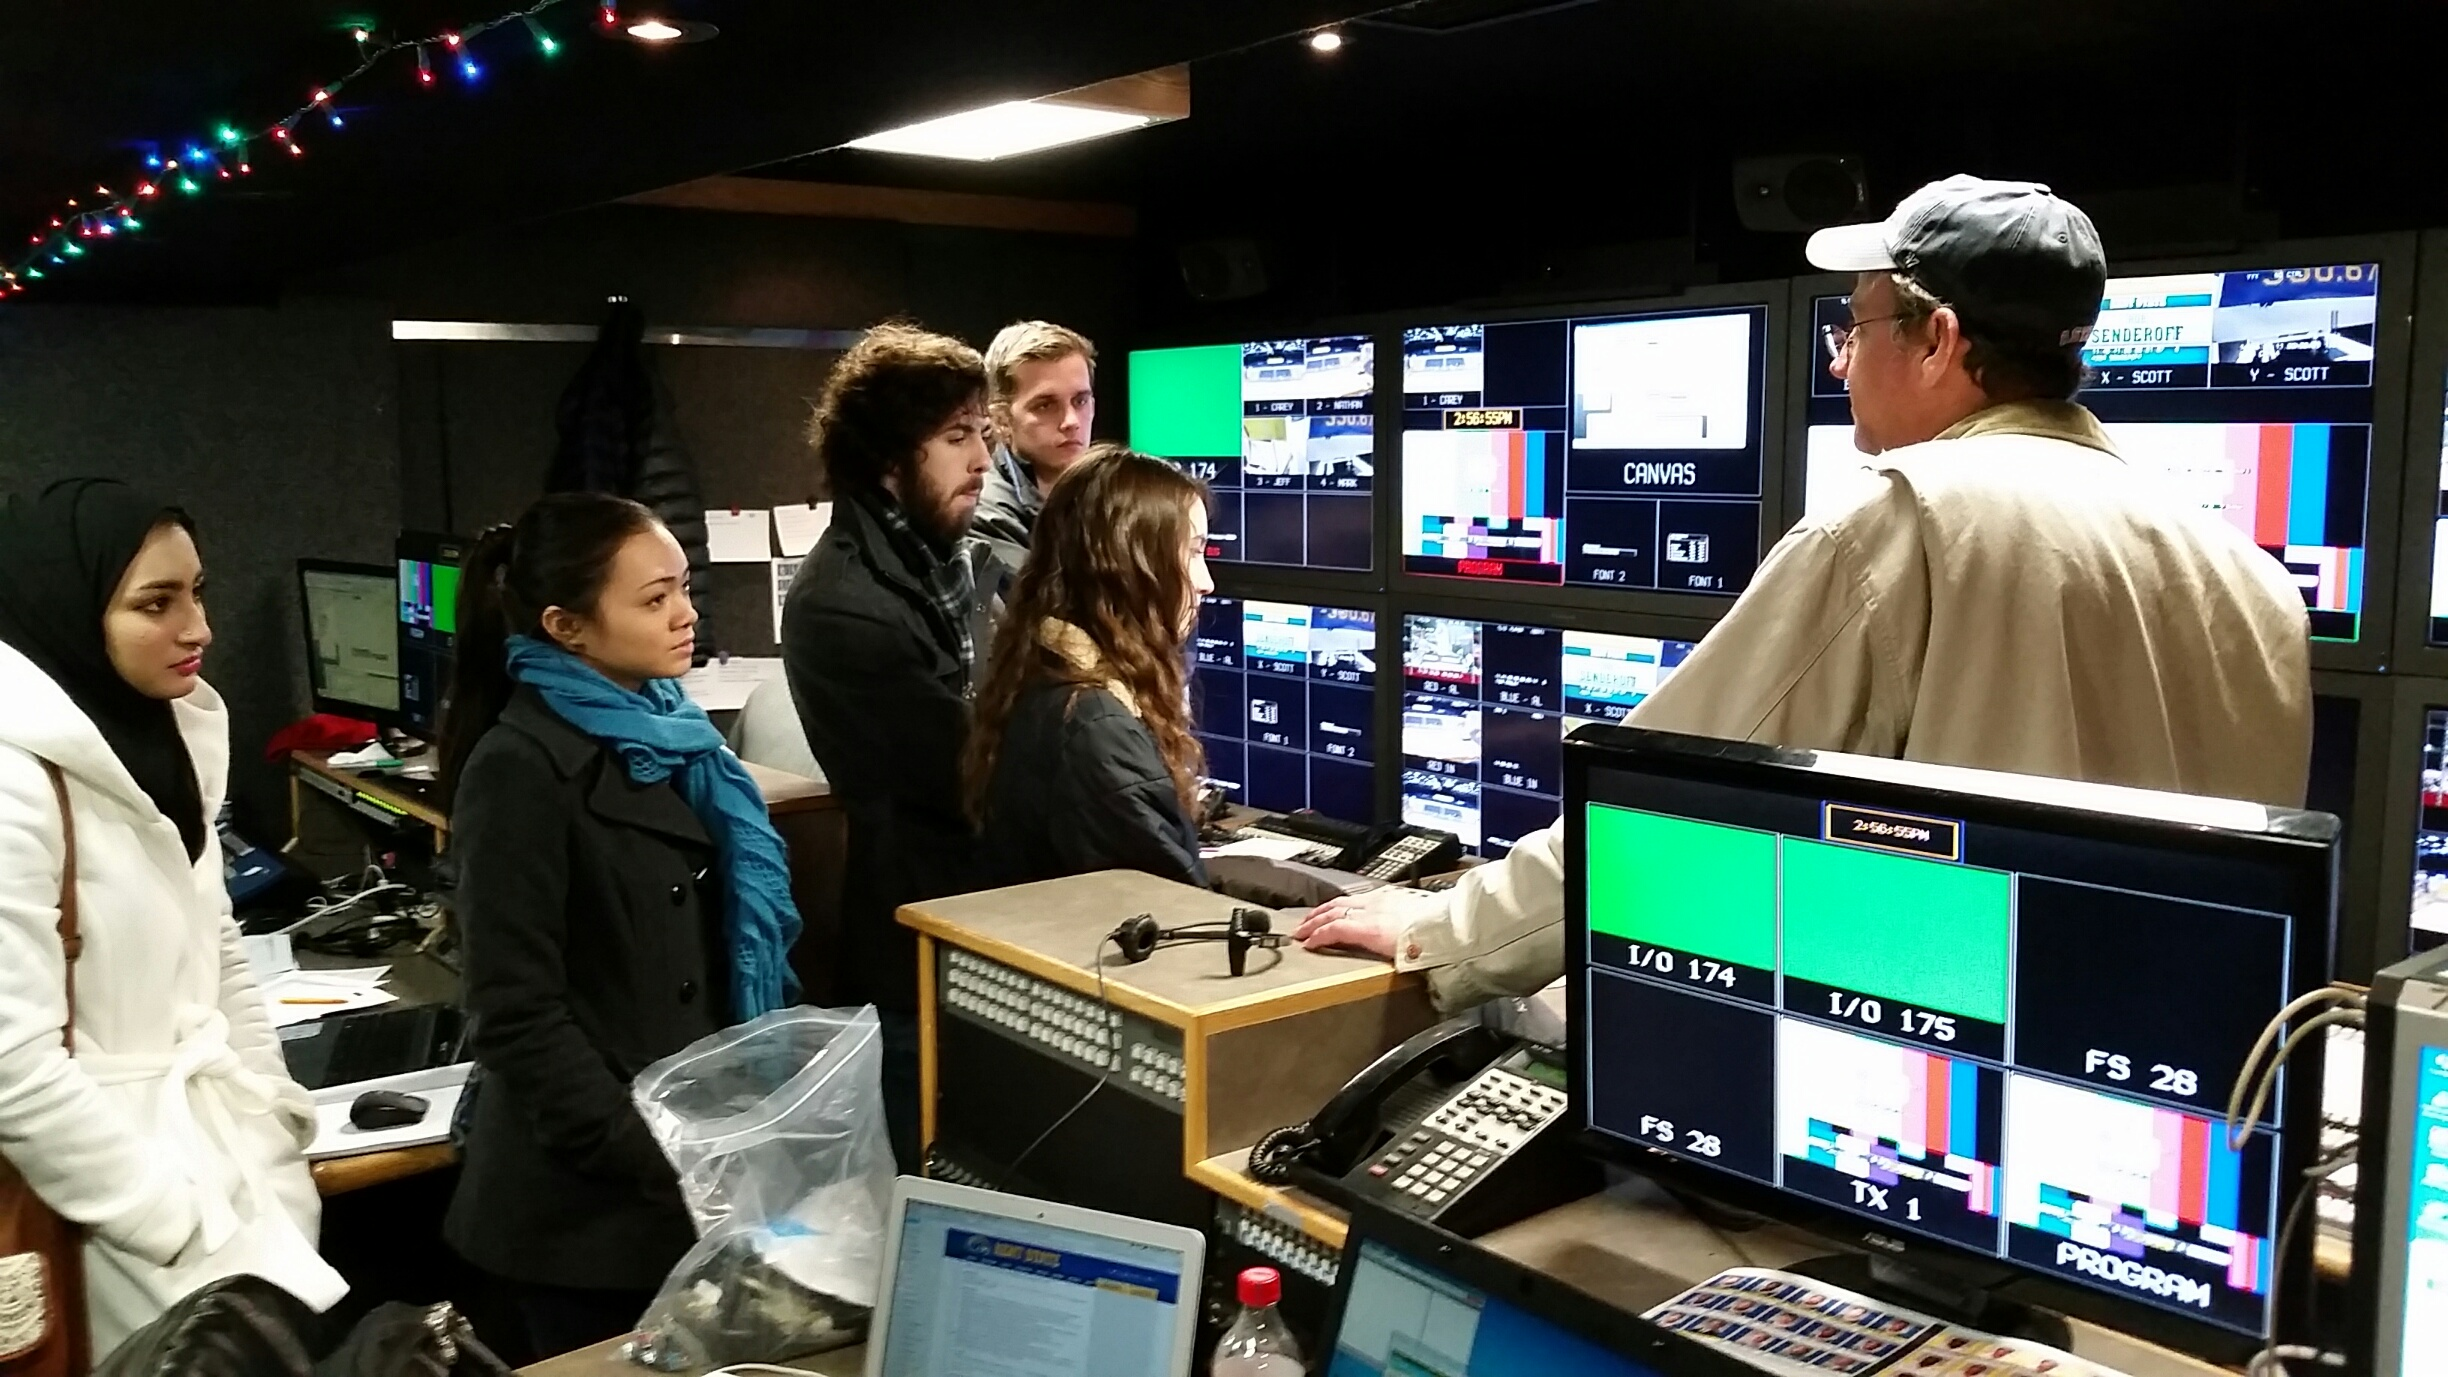 Eric Alkire Visits the TeleProductions Studio and Speaks with Students